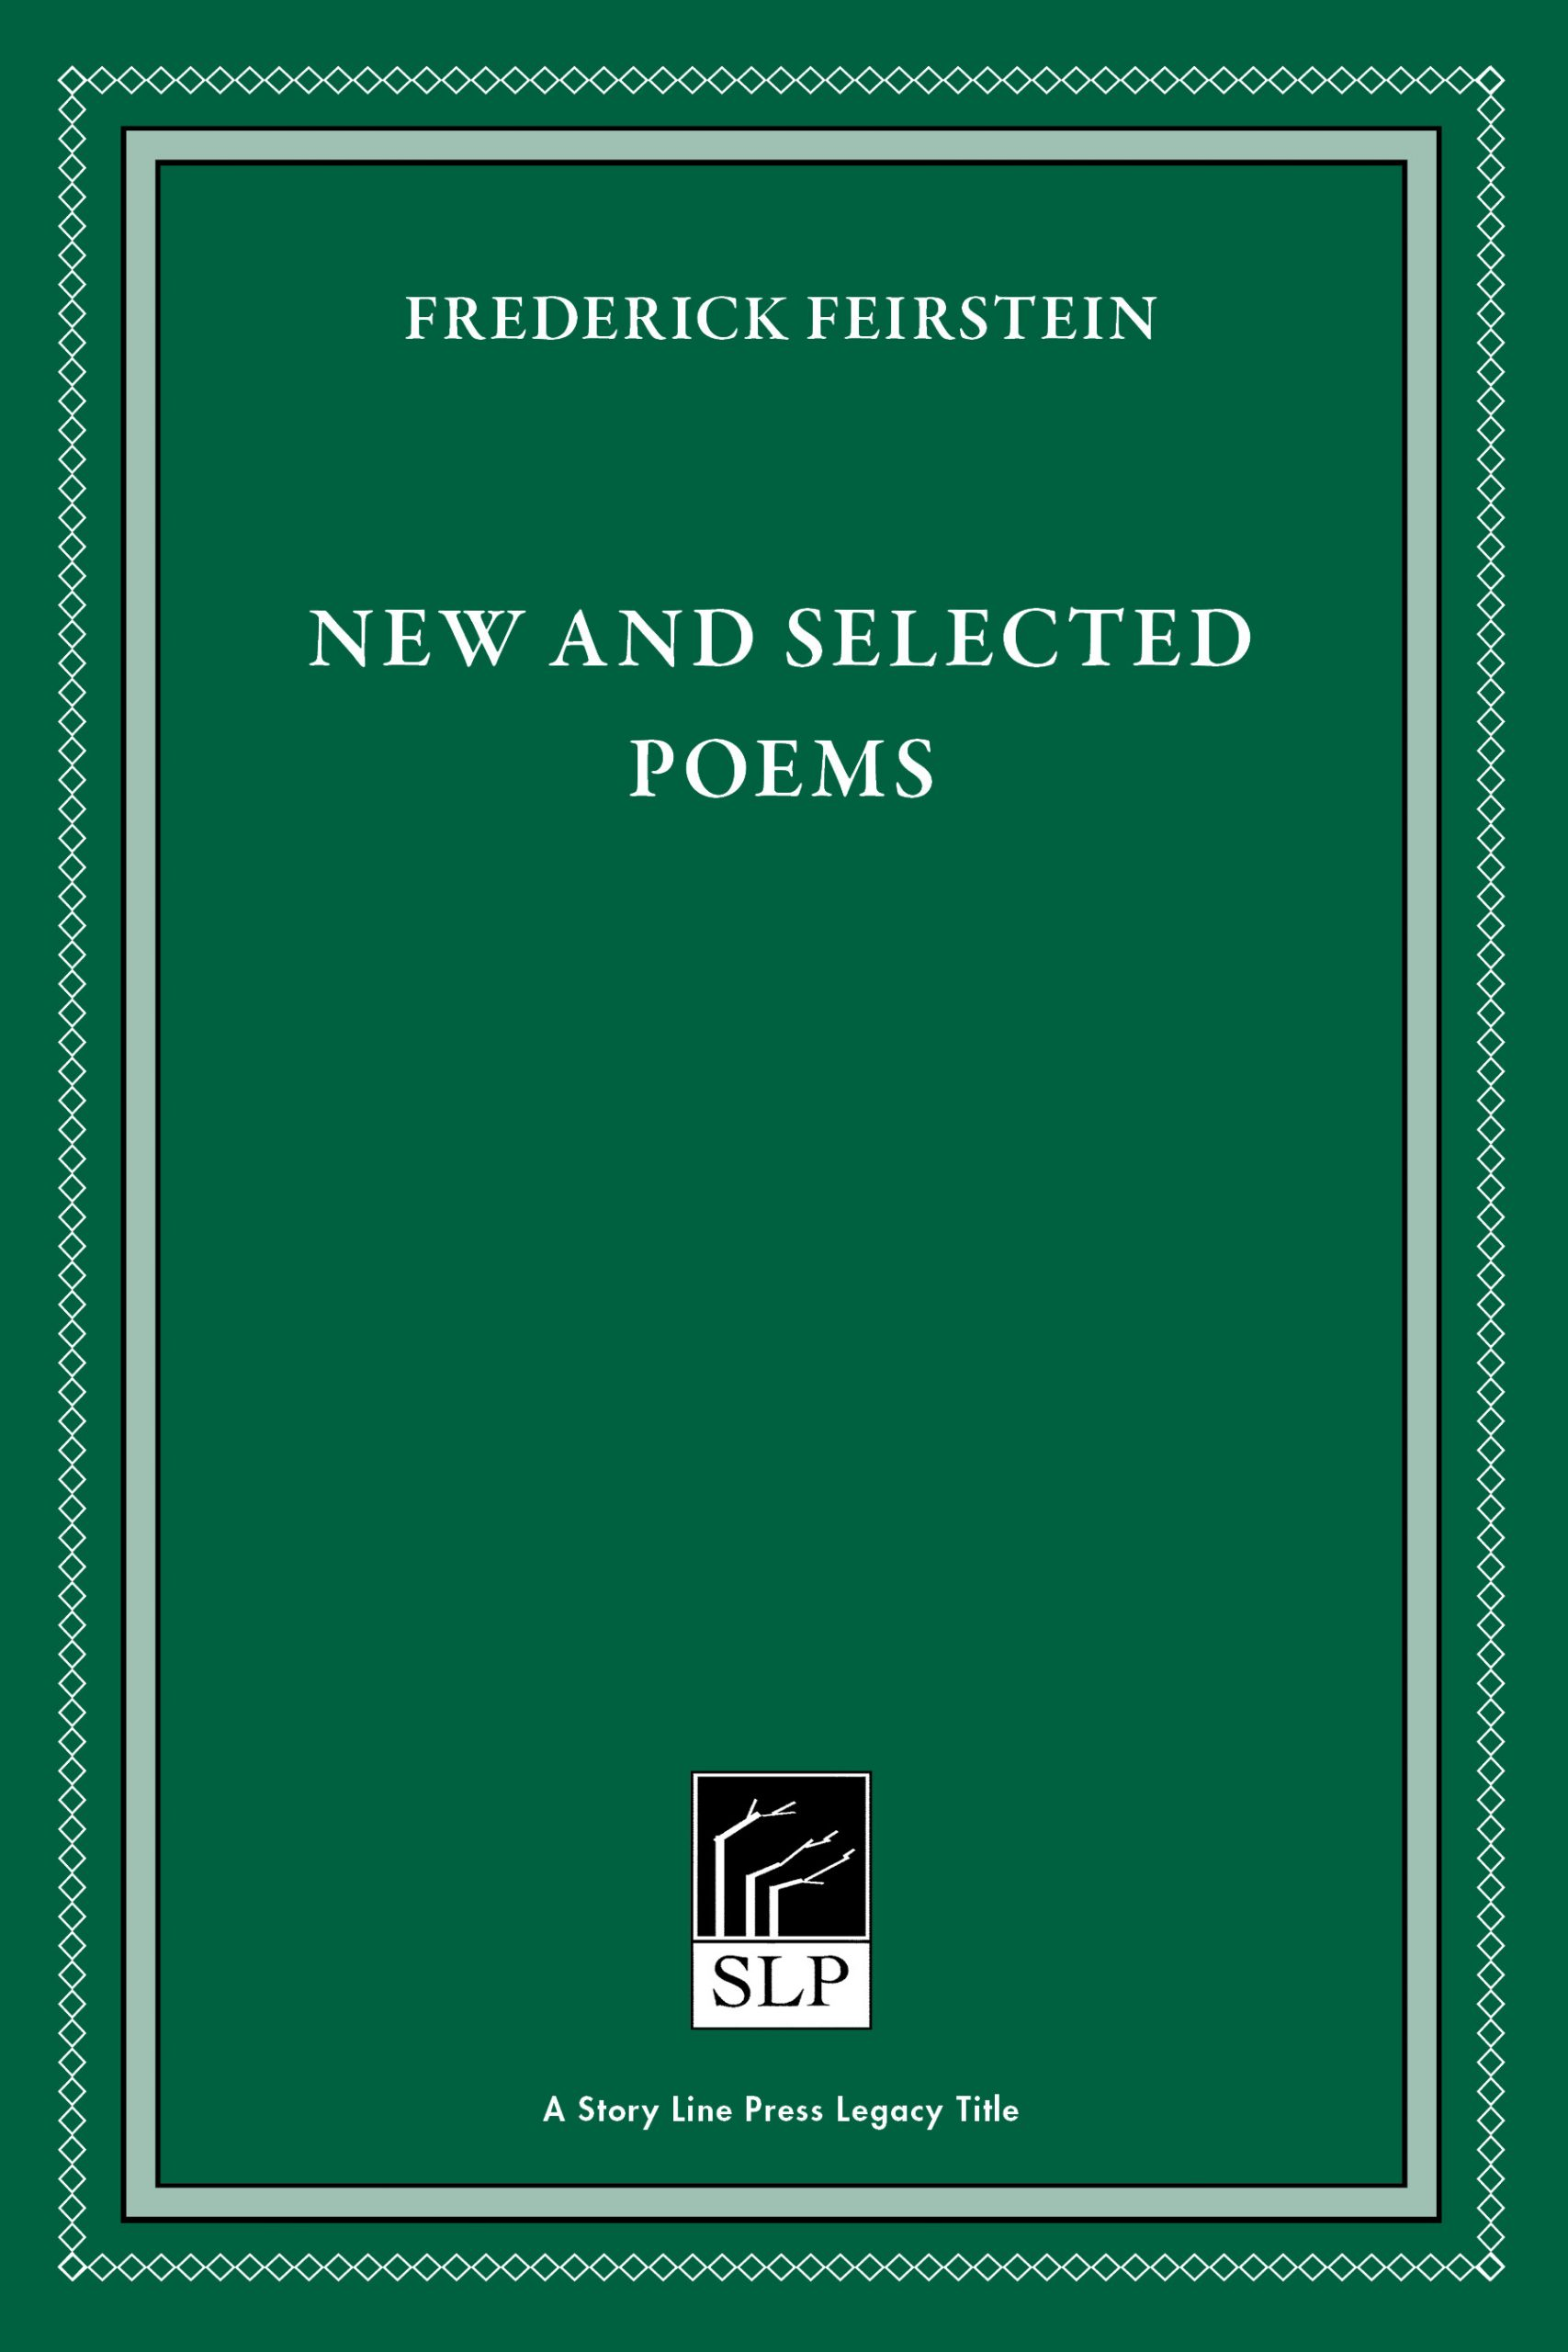 Story Line Press Legacy Title: Frederick Feirstein's New and Selected Poems white text against emerald green background